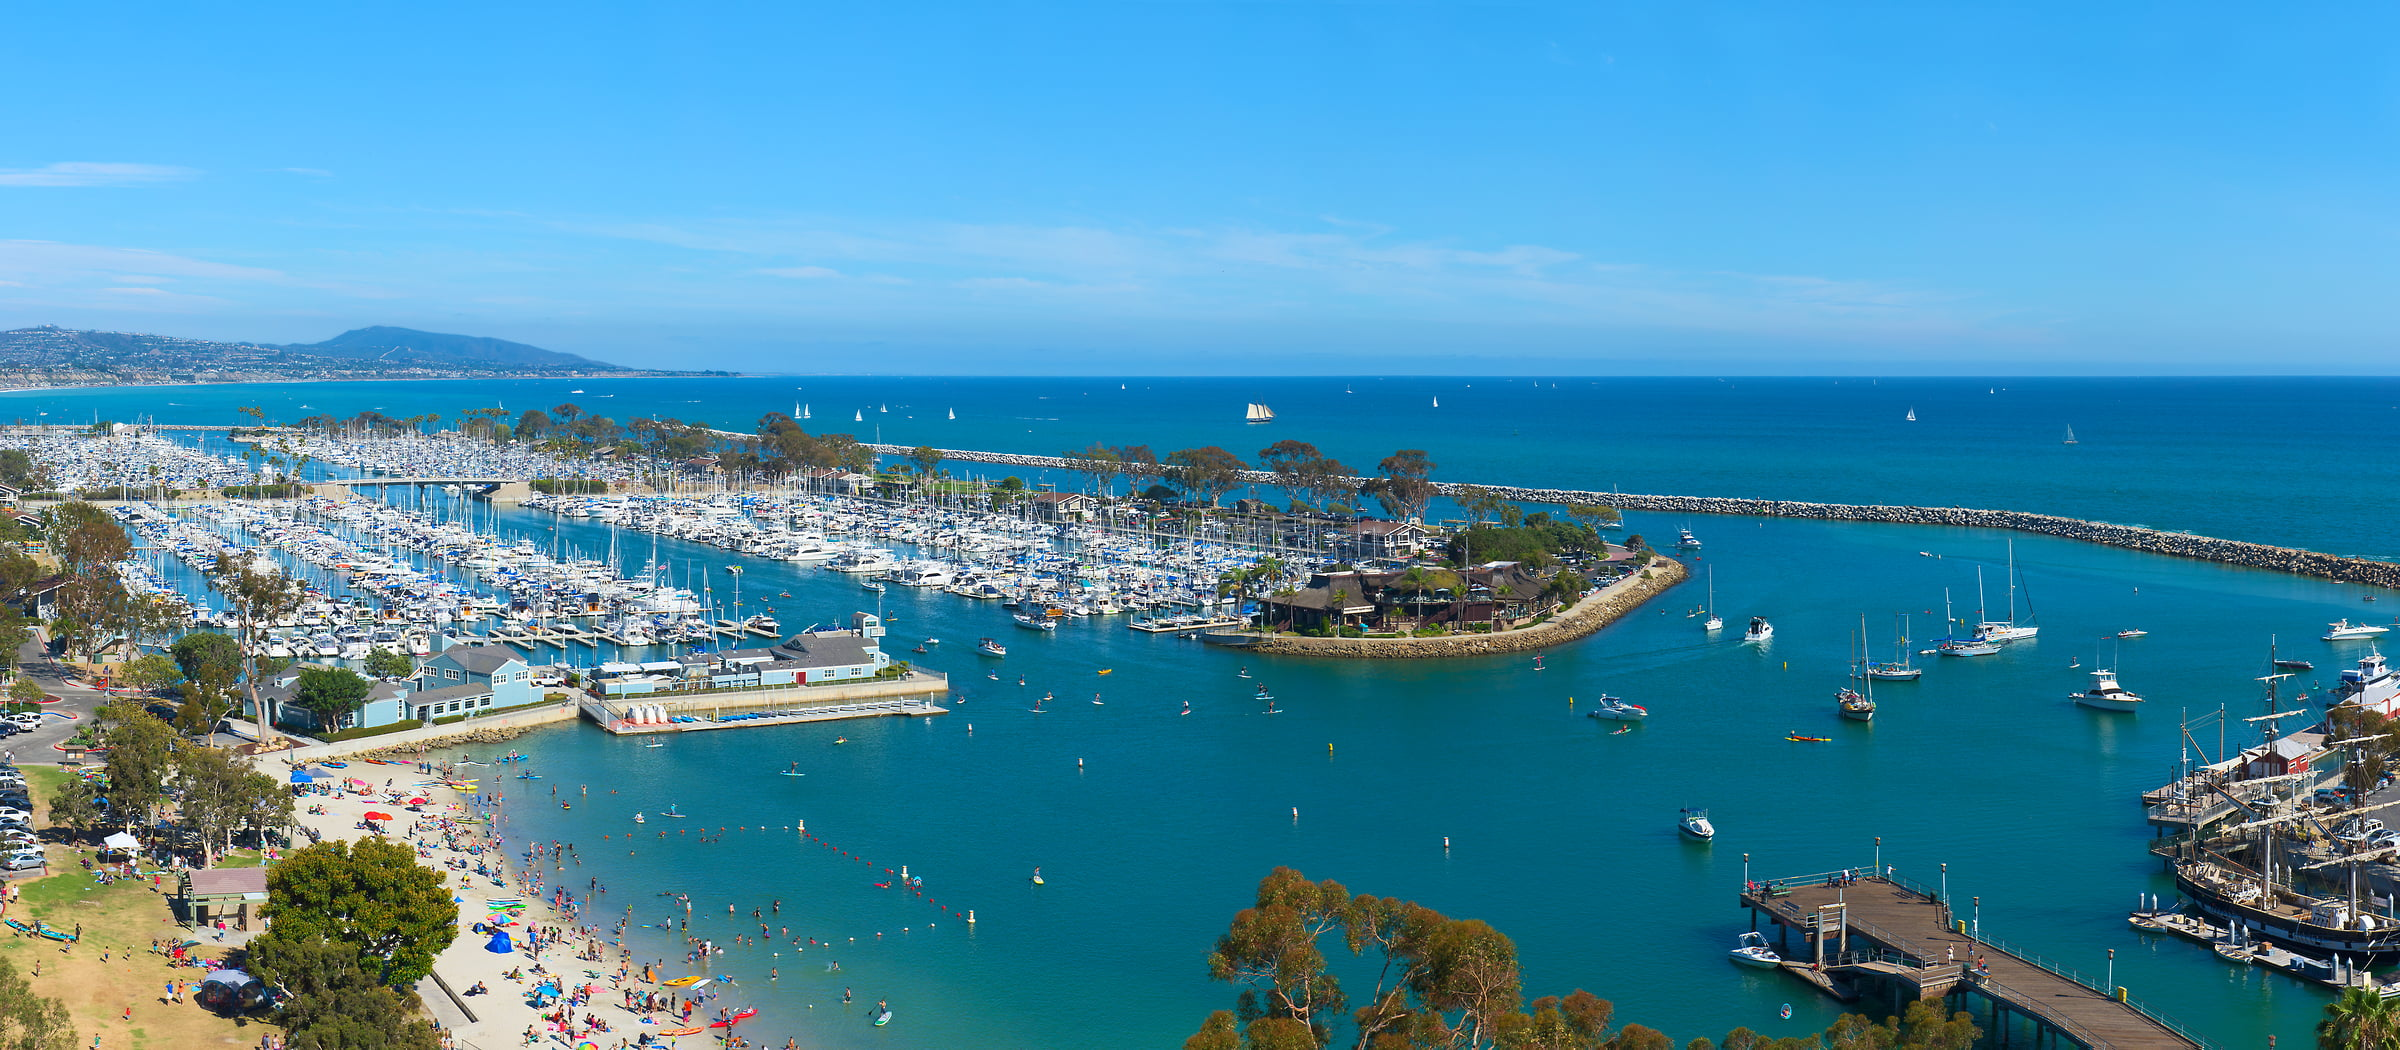 121 megapixels! A very high resolution, large-format VAST photo print of a marina with boats; seascape photograph created by Jim Tarpo in Dana Point, California